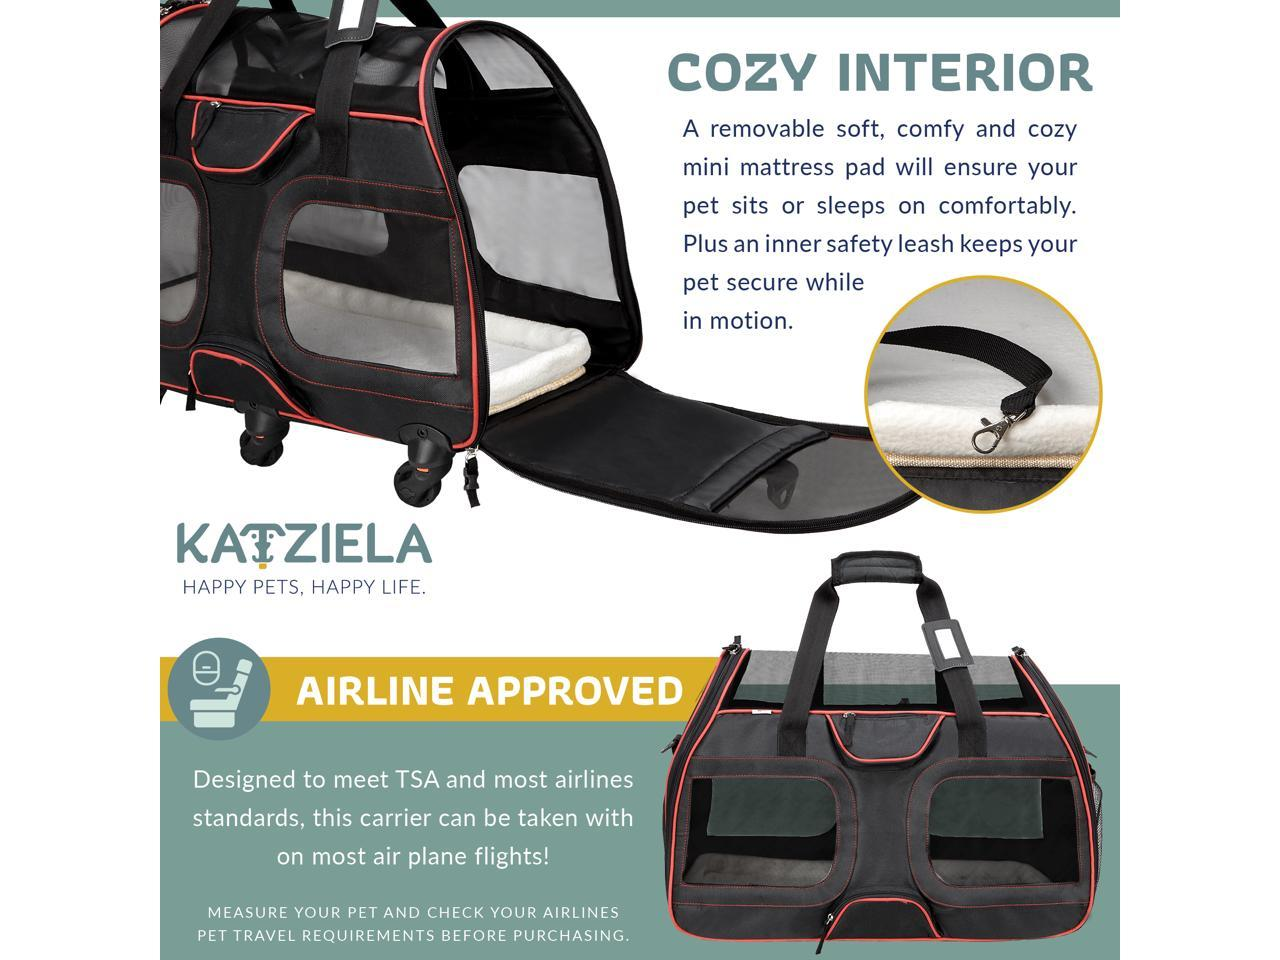 Storage Pockets Mesh Ventilation Windows Katziela Wheeled Pet Carrier Backpack Removable Rolling Wheels Soft Sided Airline Approved Hiking Carrying Bag for Small Dogs and Cats